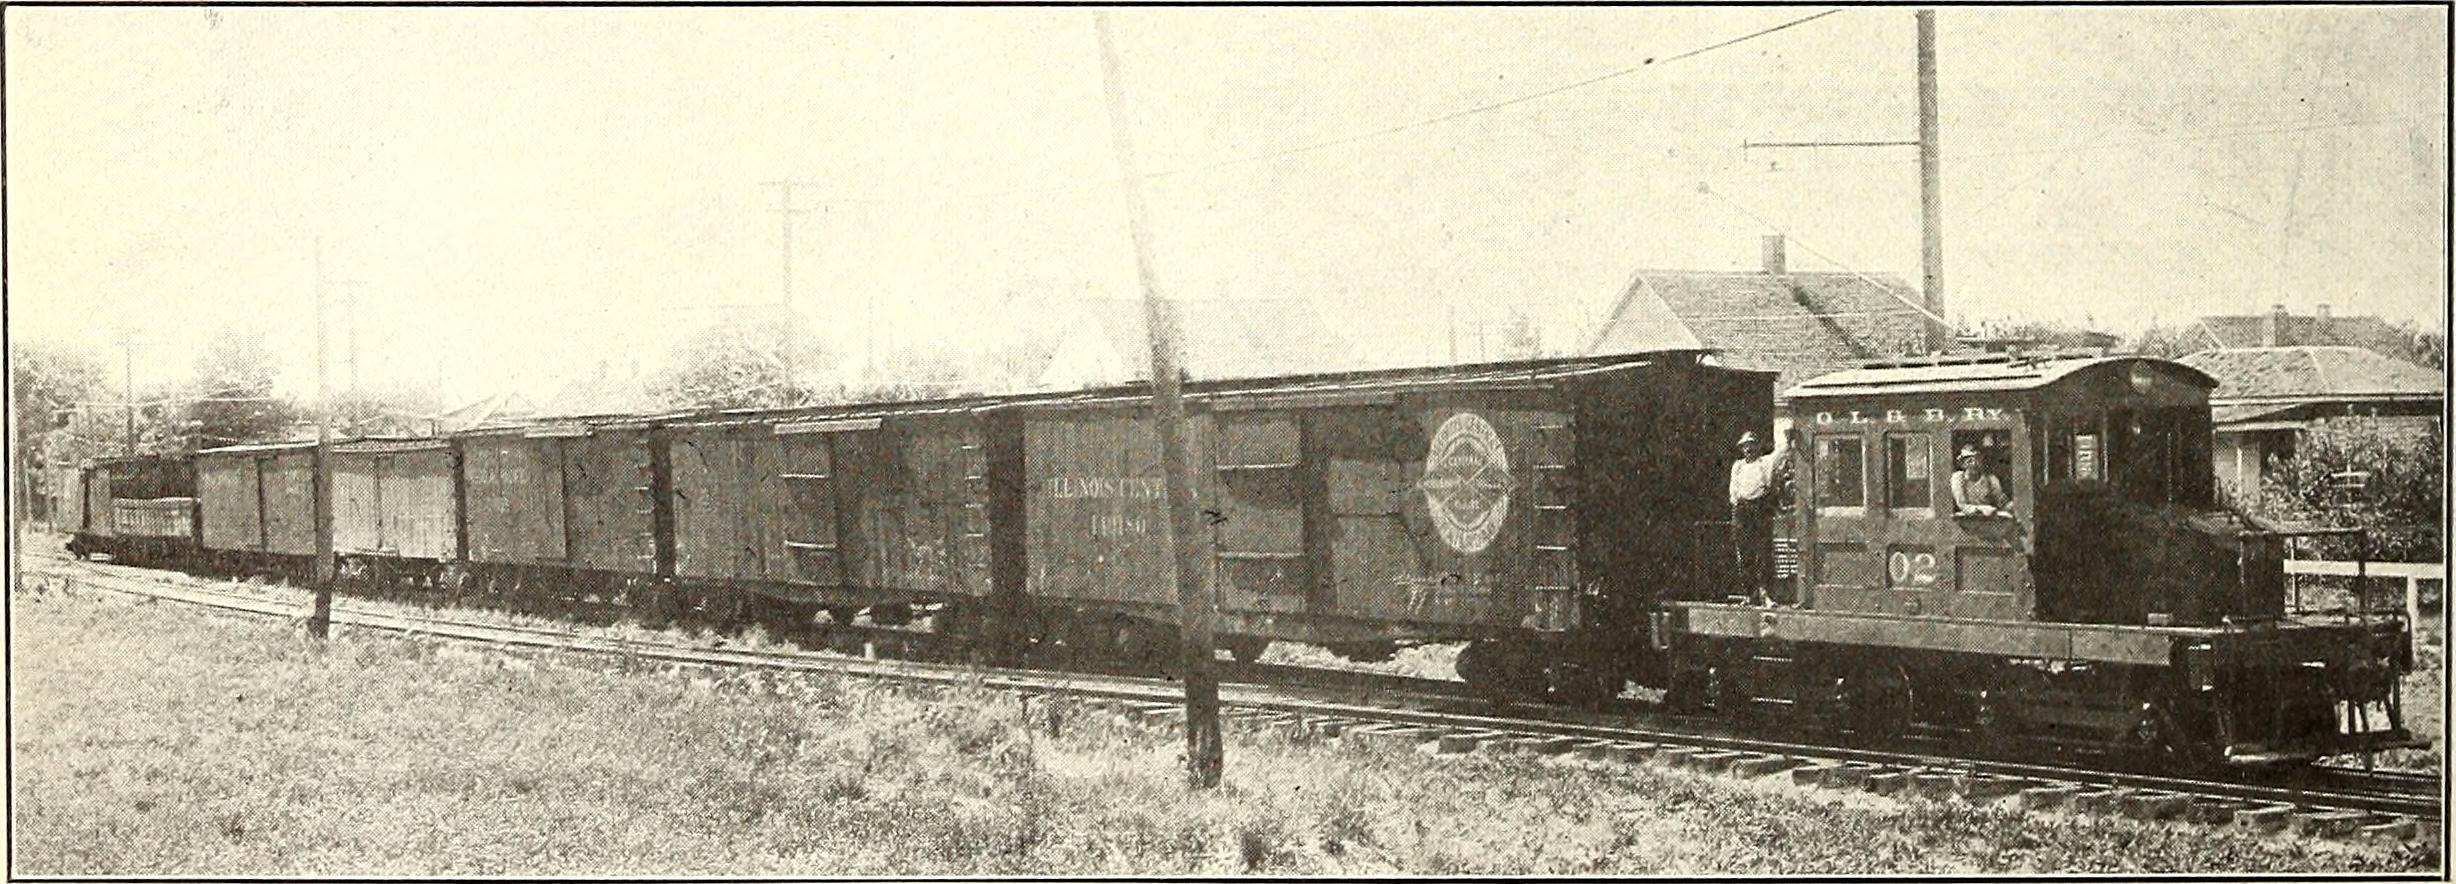 Omaha, Lincoln and Beatrice Railway - Wikipedia